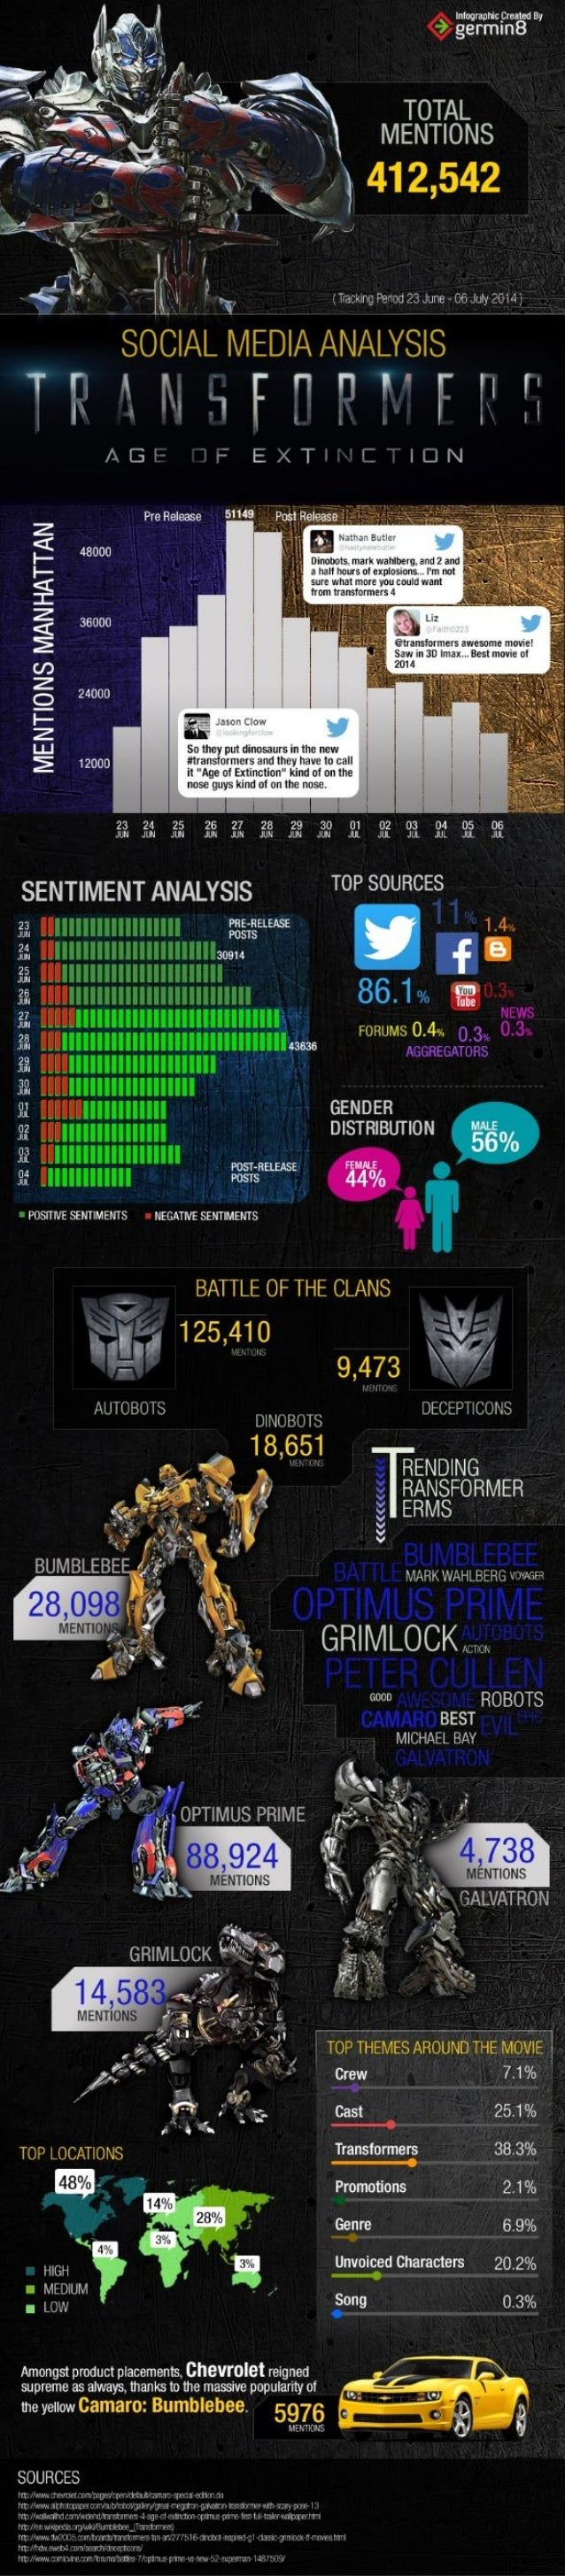 Social Media Movie Review - Transformers: Age of Extinction